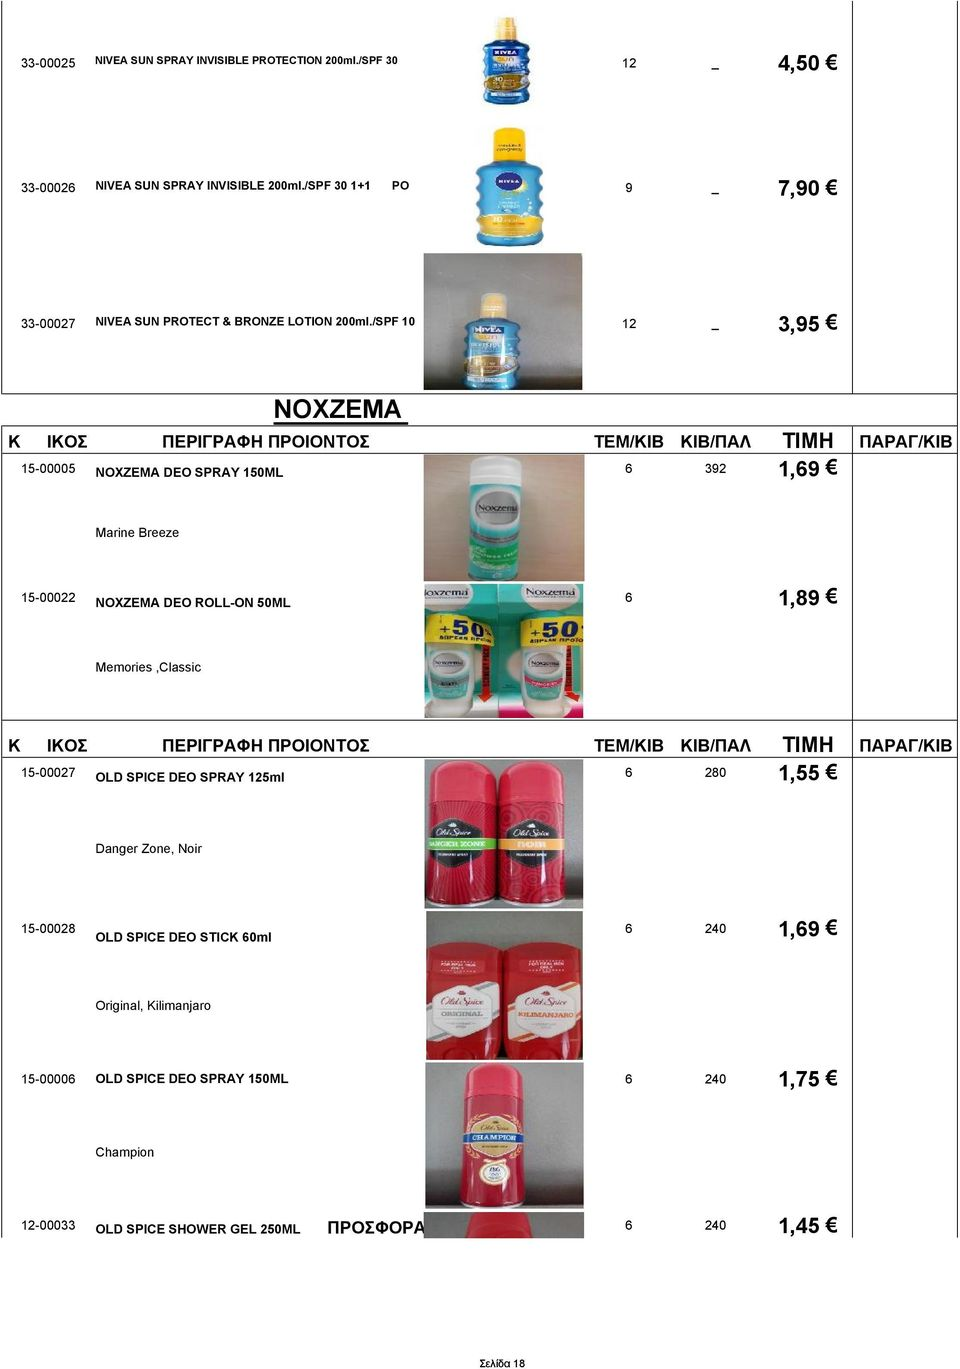 /SPF 30 33-0002 33-00027 NOXZEMA 15-00005 NOXZEMA DEO SPRAY 150ML 392 1,9 Marine Breeze 15-00022 1,89 NOXZEMA DEO ROLL-ON 50ML